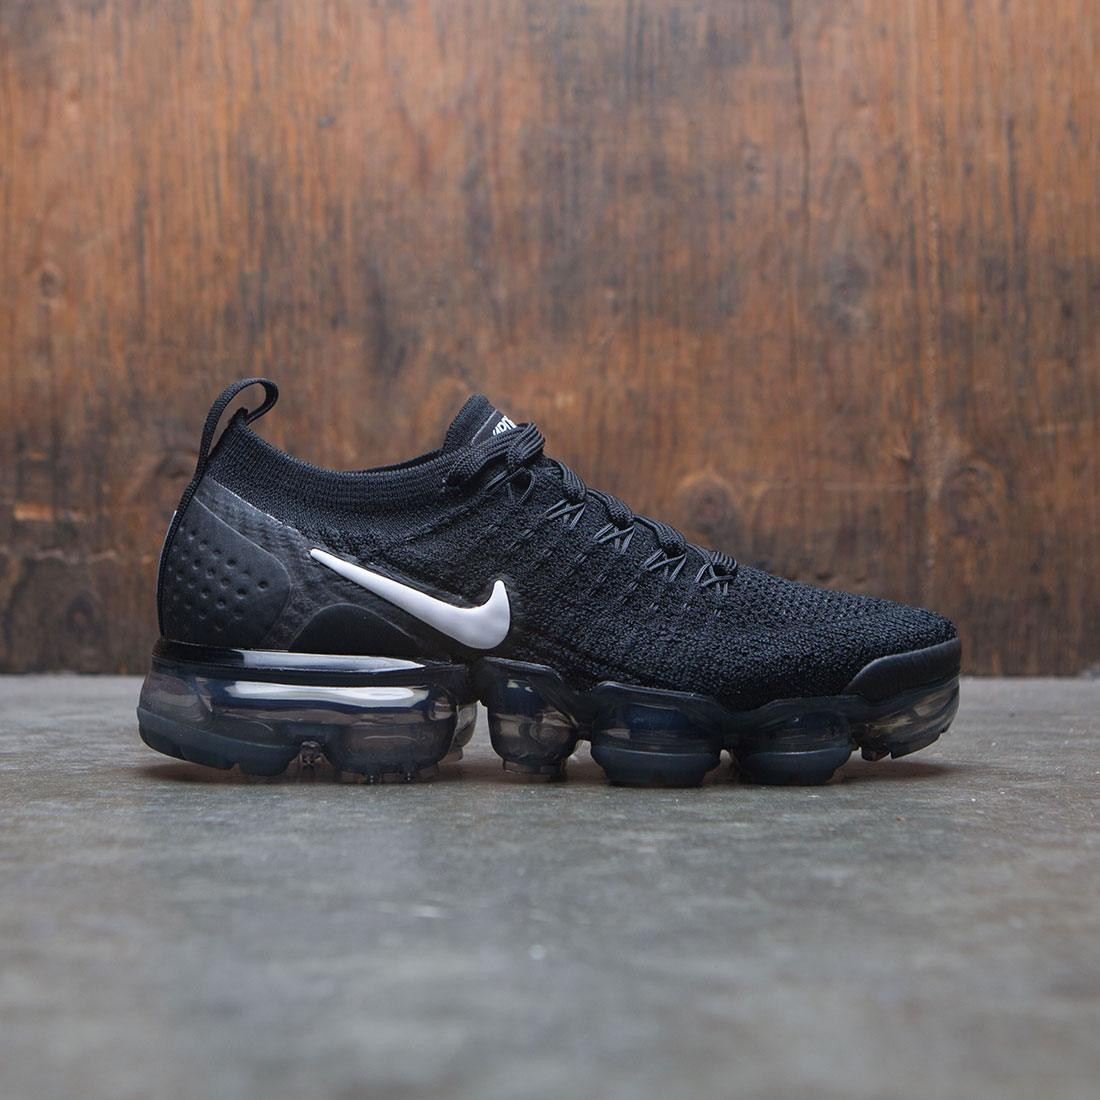 3635270e7641c nike women air vapormax flyknit 2 black white dark grey metallic silver